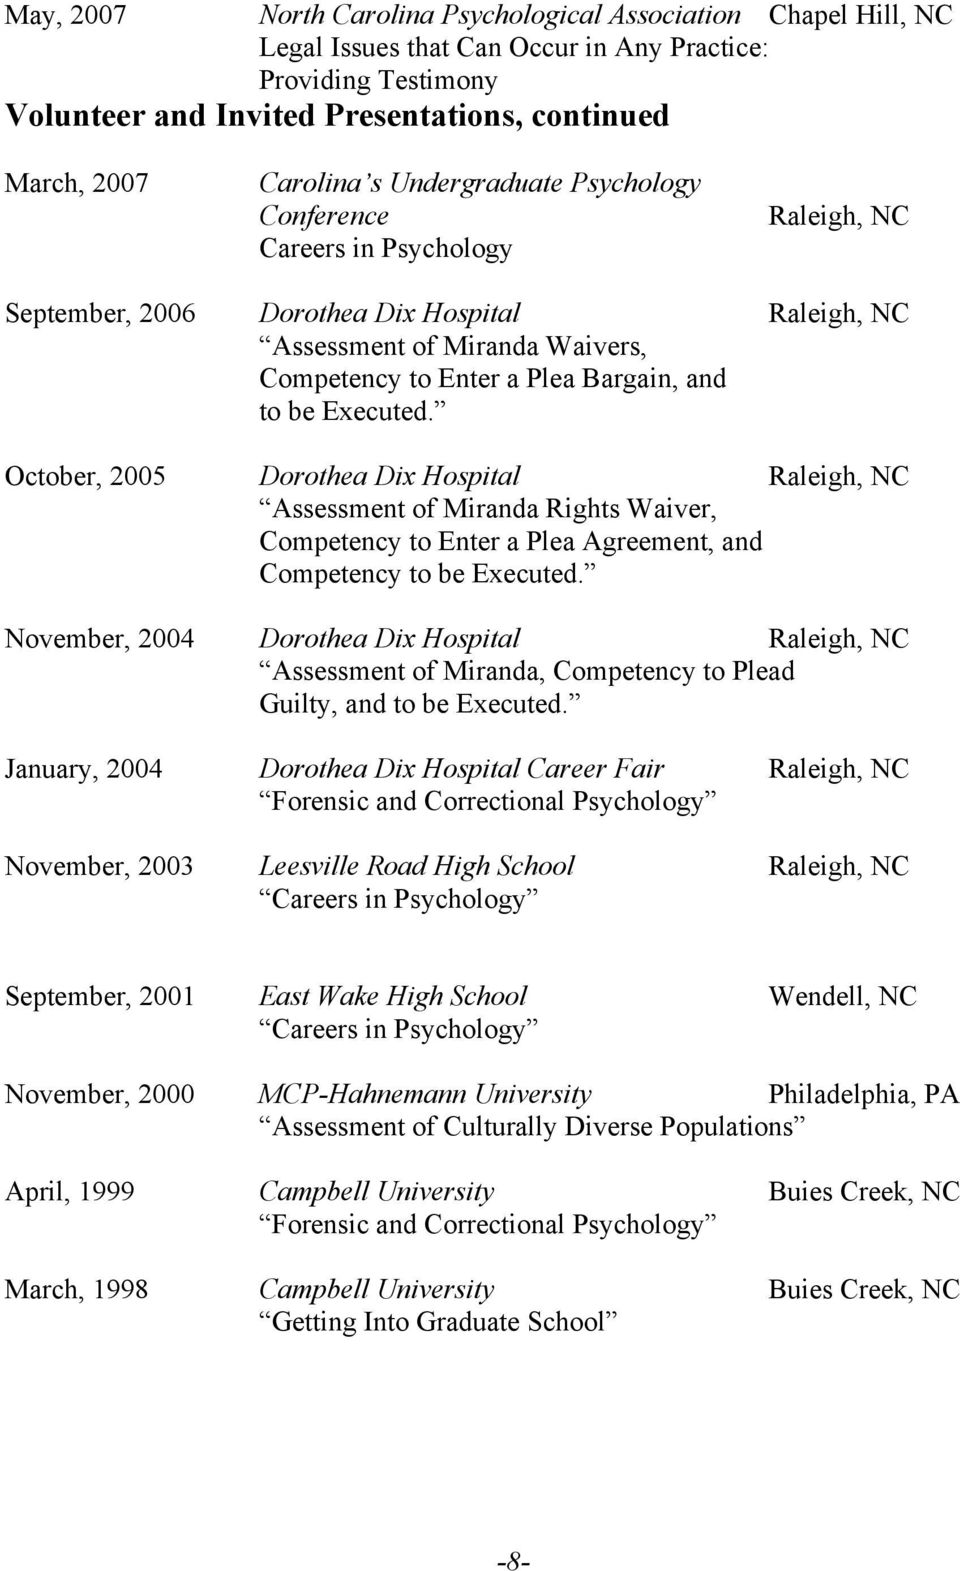 Executed. October, 2005 Dorothea Dix Hospital Raleigh, NC Assessment of Miranda Rights Waiver, Competency to Enter a Plea Agreement, and Competency to be Executed.